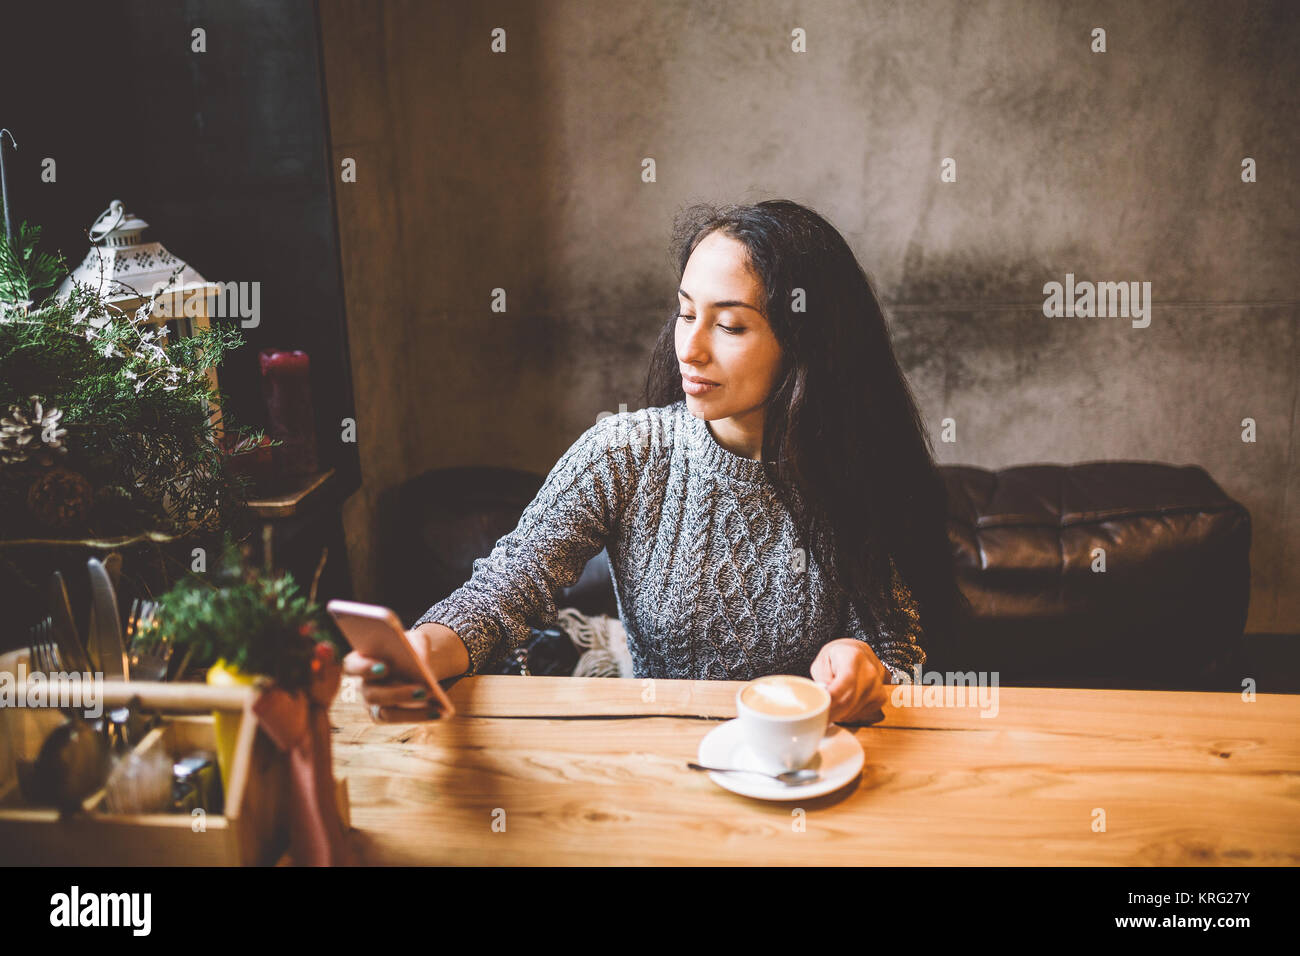 beautiful young girl uses, types text on a mobile phone at a wooden table near the window and drinks coffee in a - Stock Image